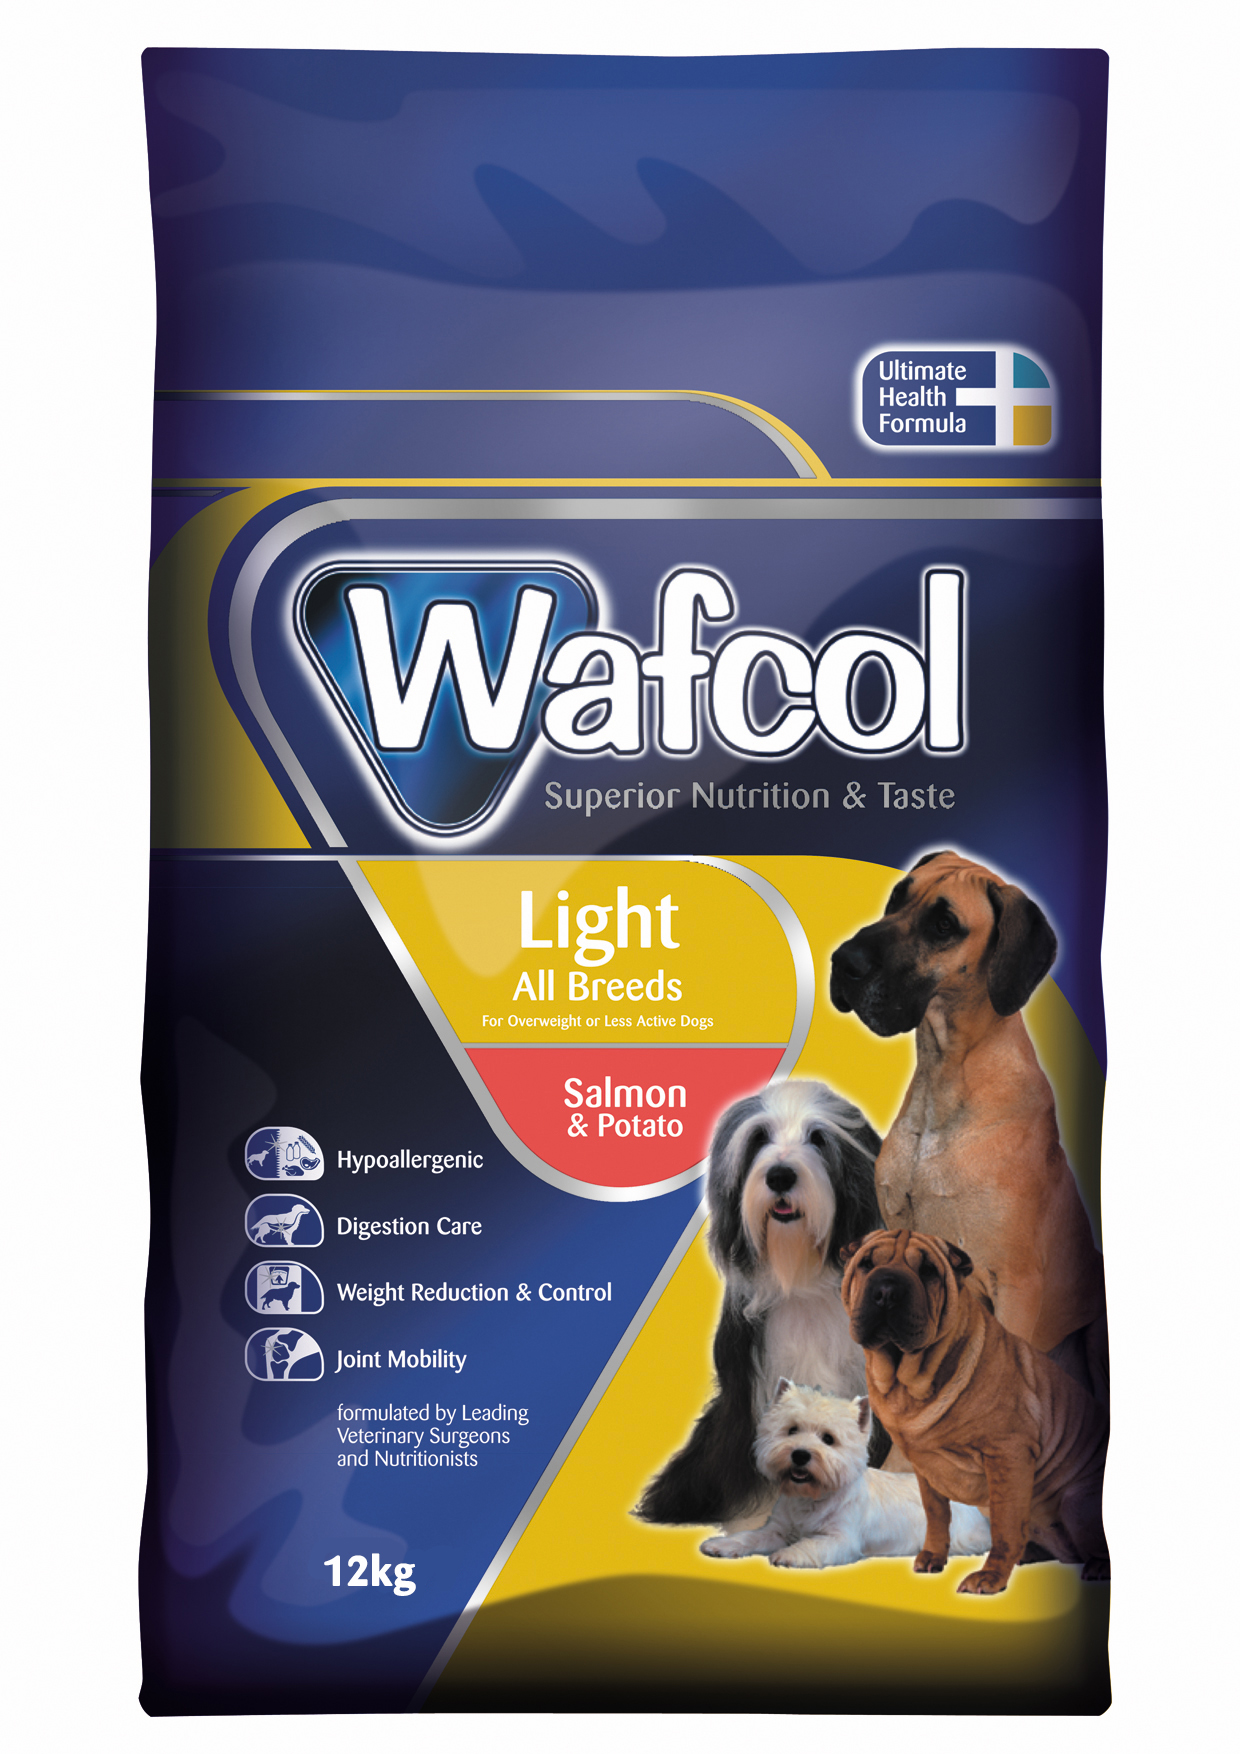 Wafcol Super Premium Light Salmon & Potato Dog Food